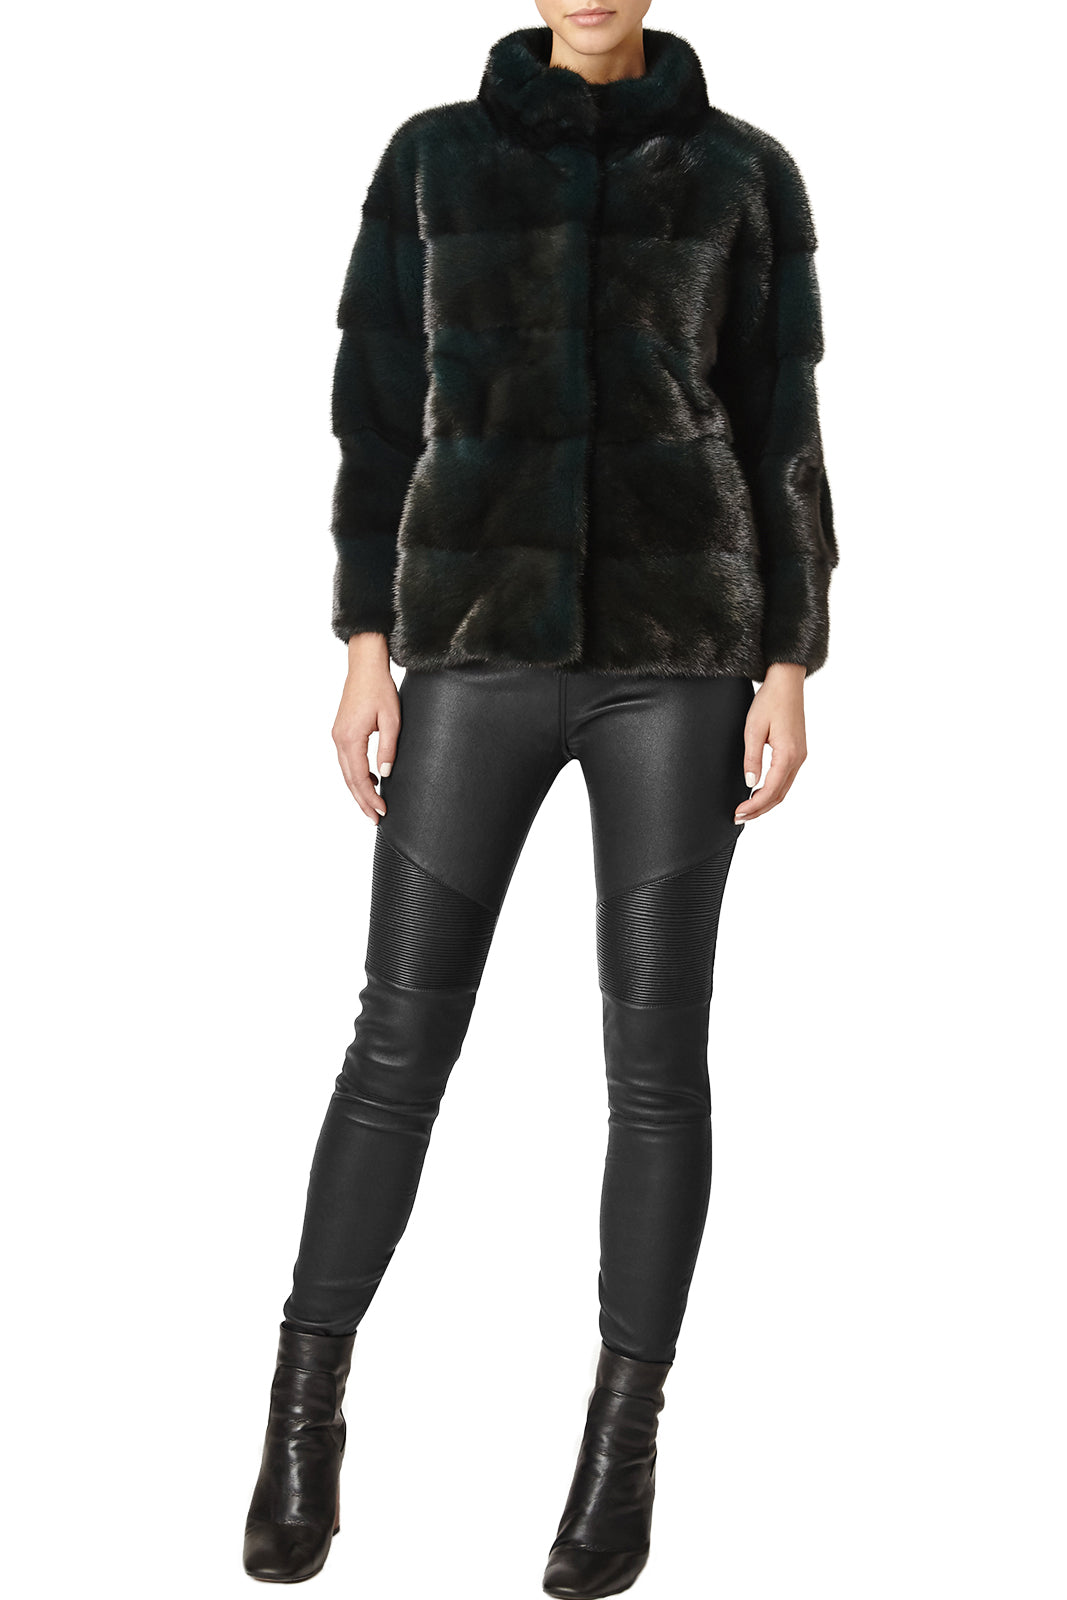 rosie womens mink jacket with collar Foresta 2